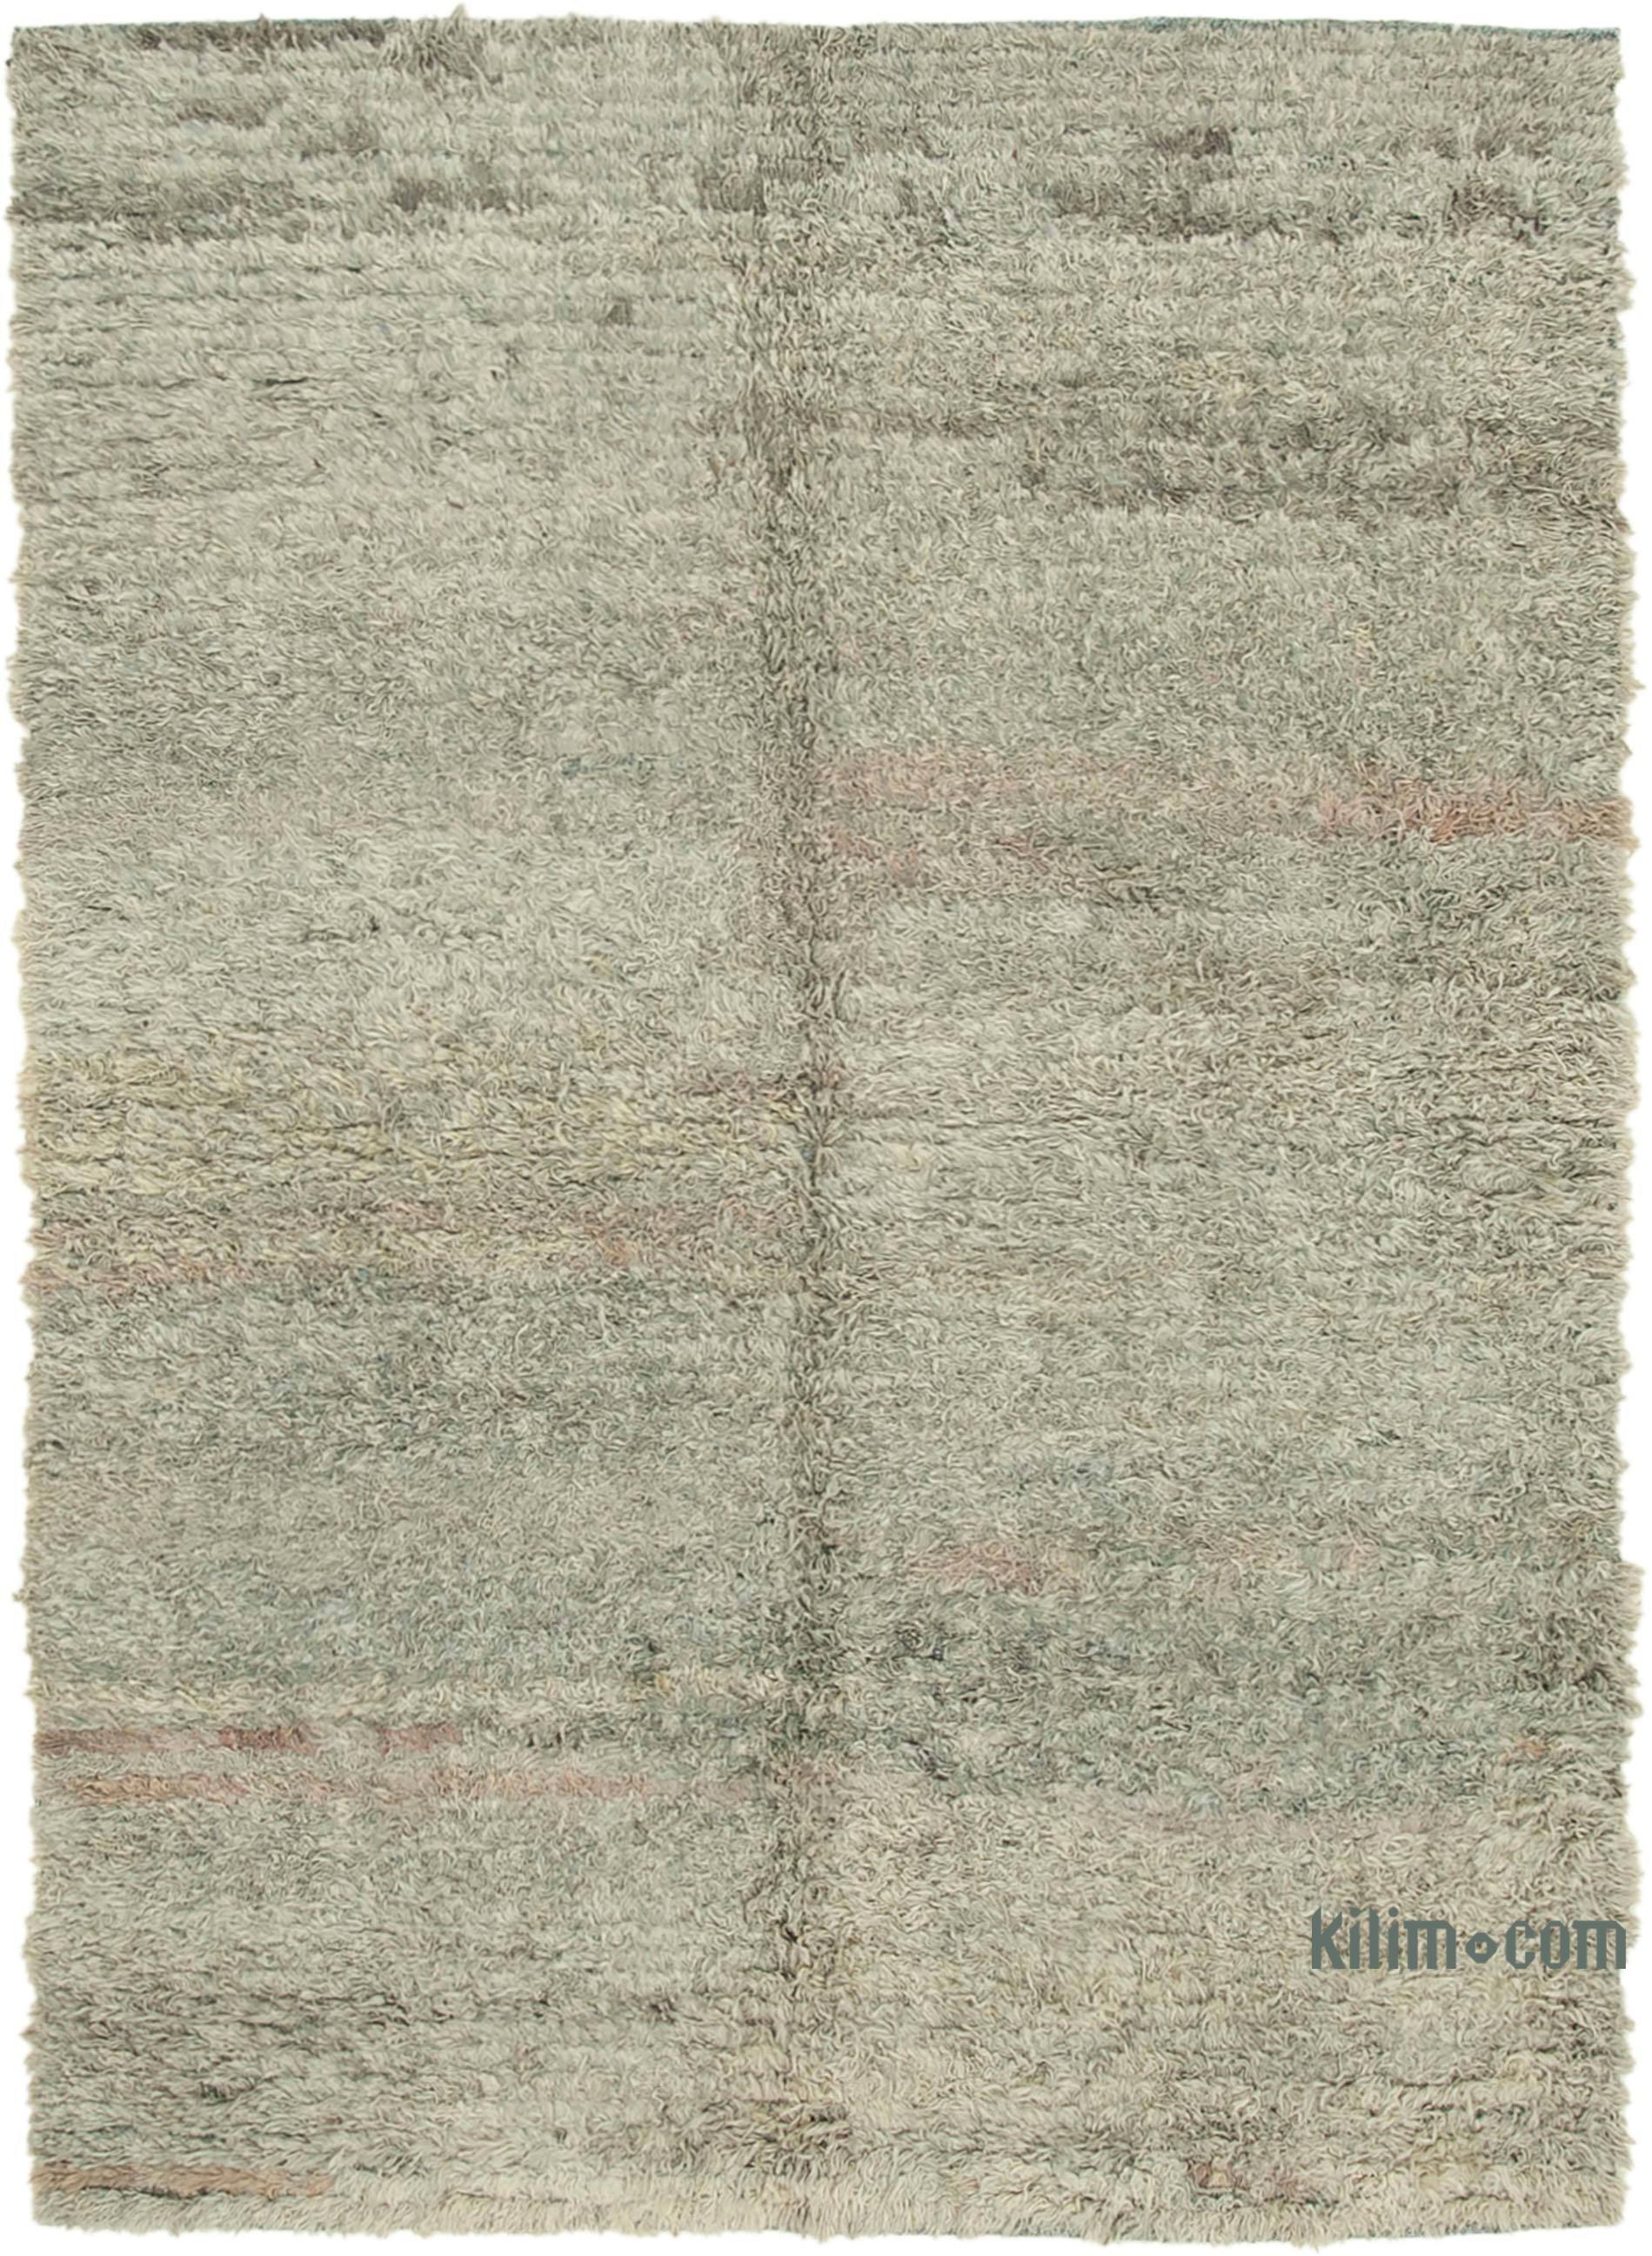 Contemporary Hand-Knotted Wool Rug